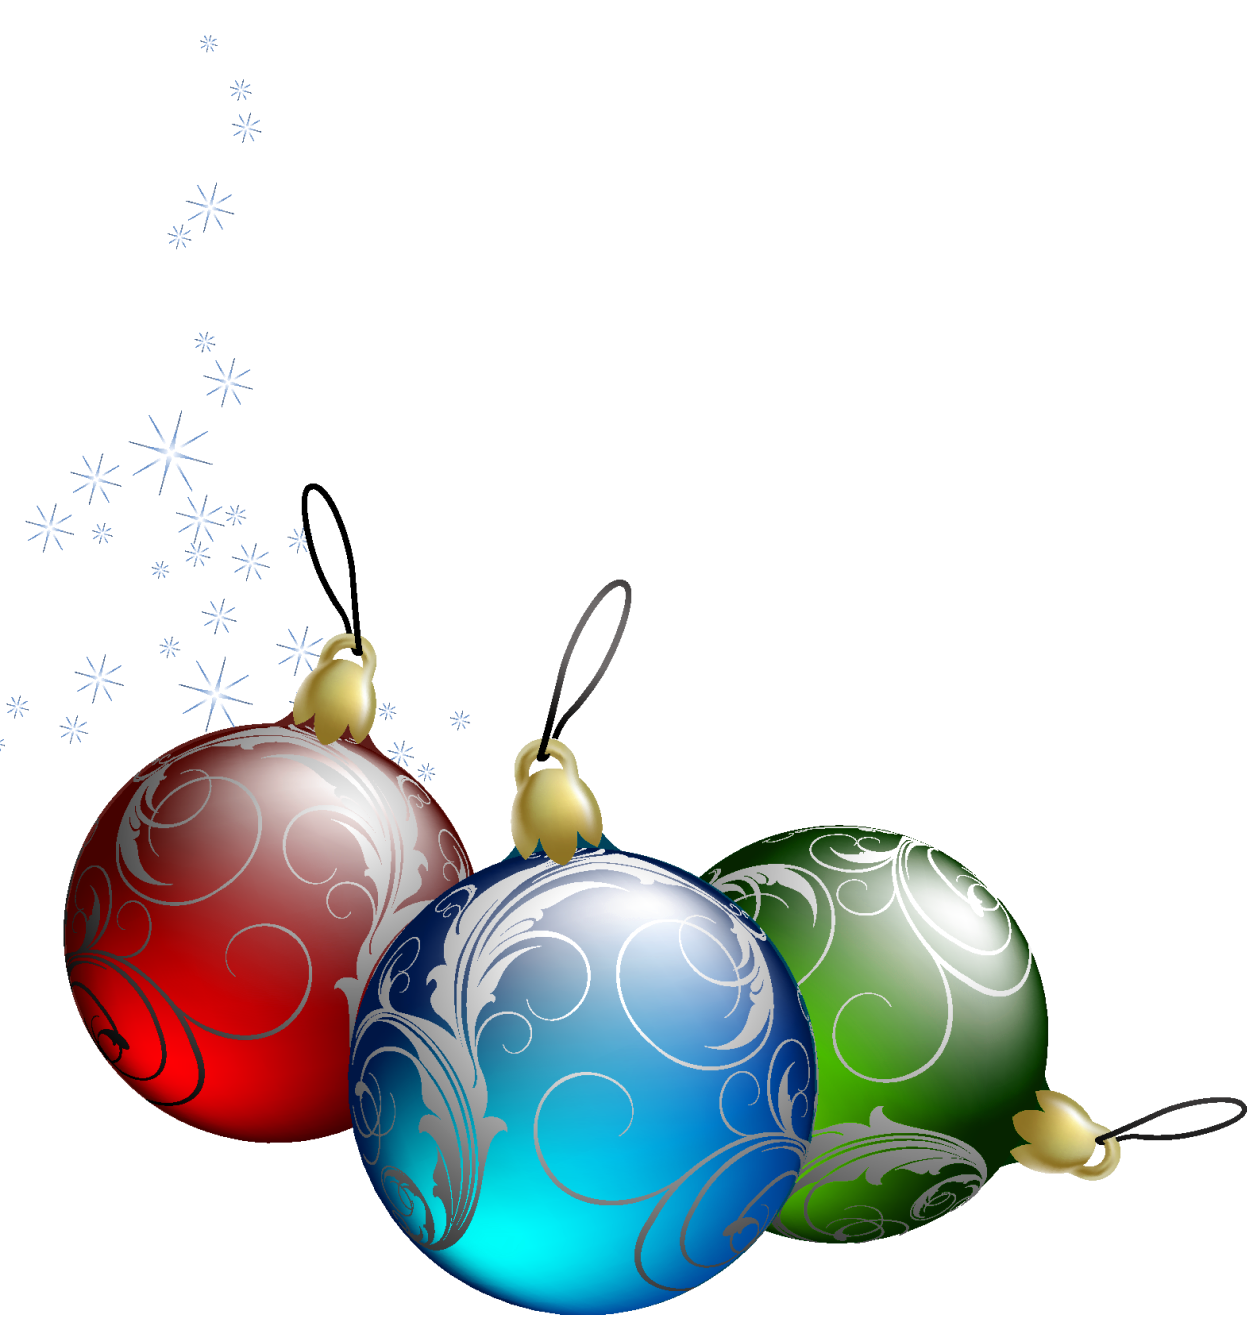 Transparent christmas ornaments png. Free pictures of download